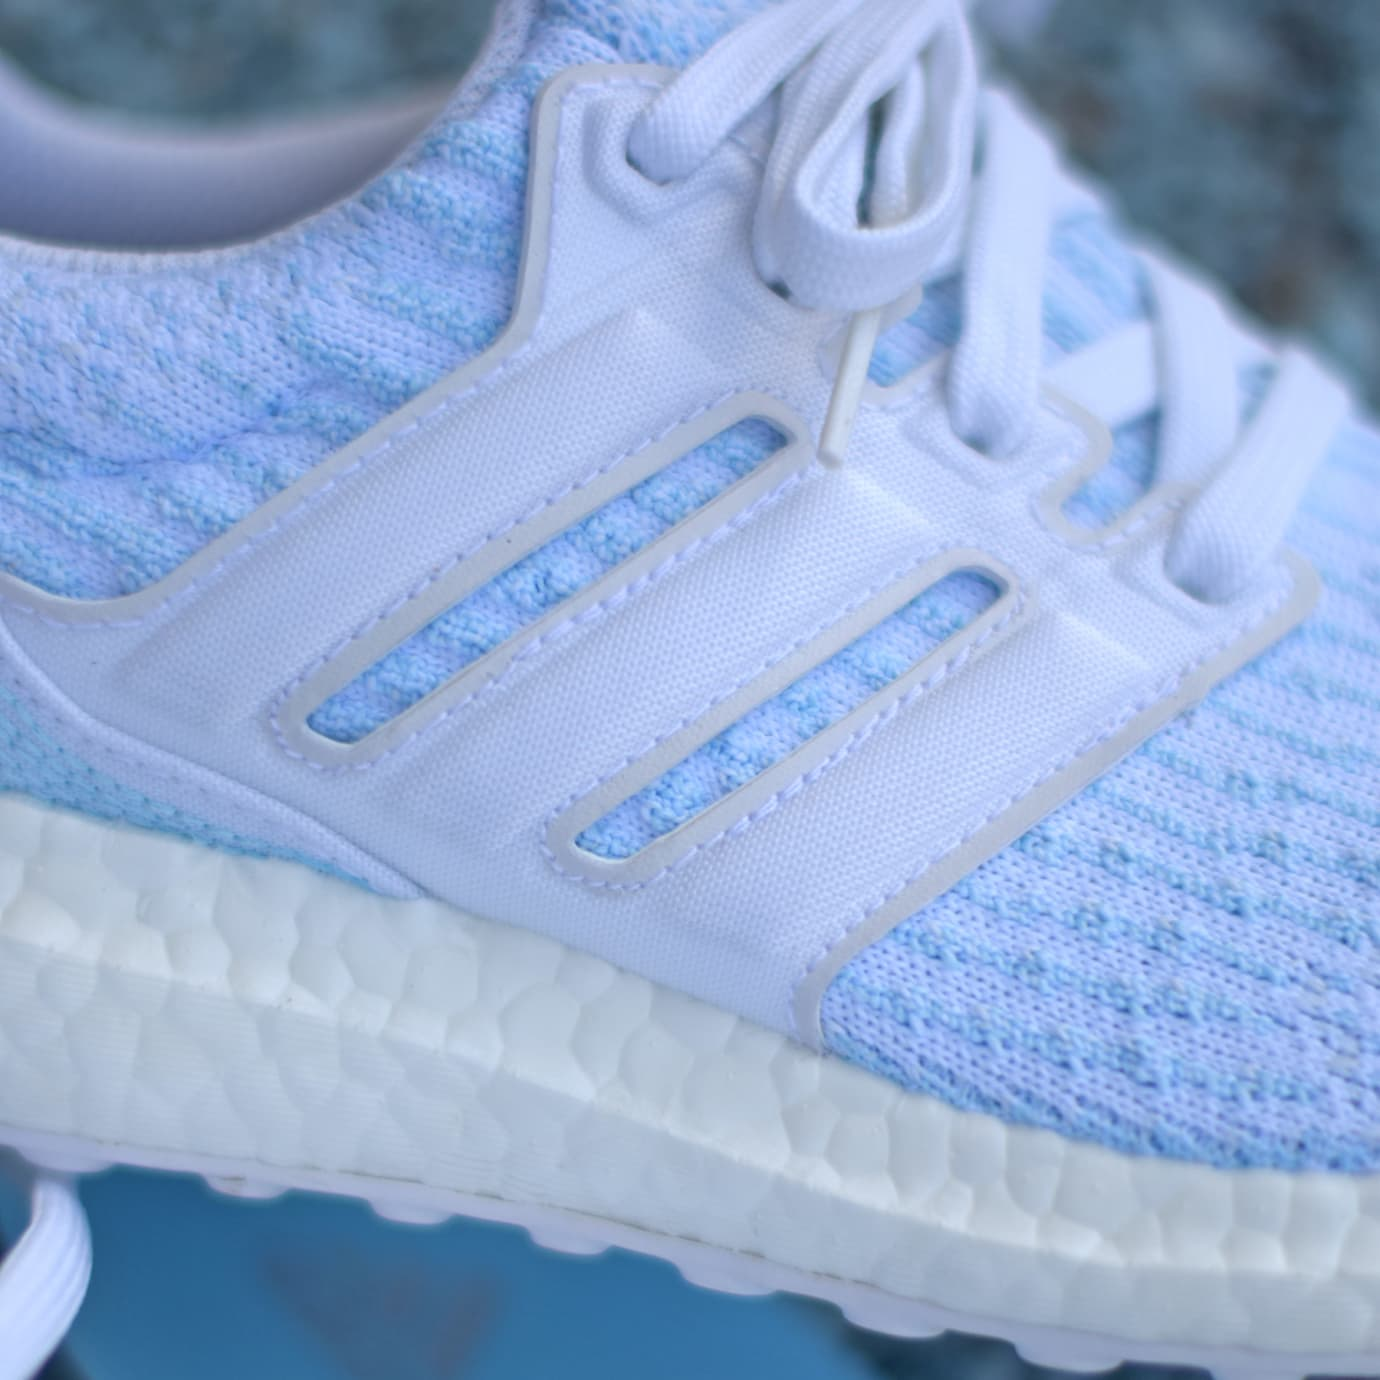 new product c2399 4540a Parley x Adidas Ultra Boost 3.0